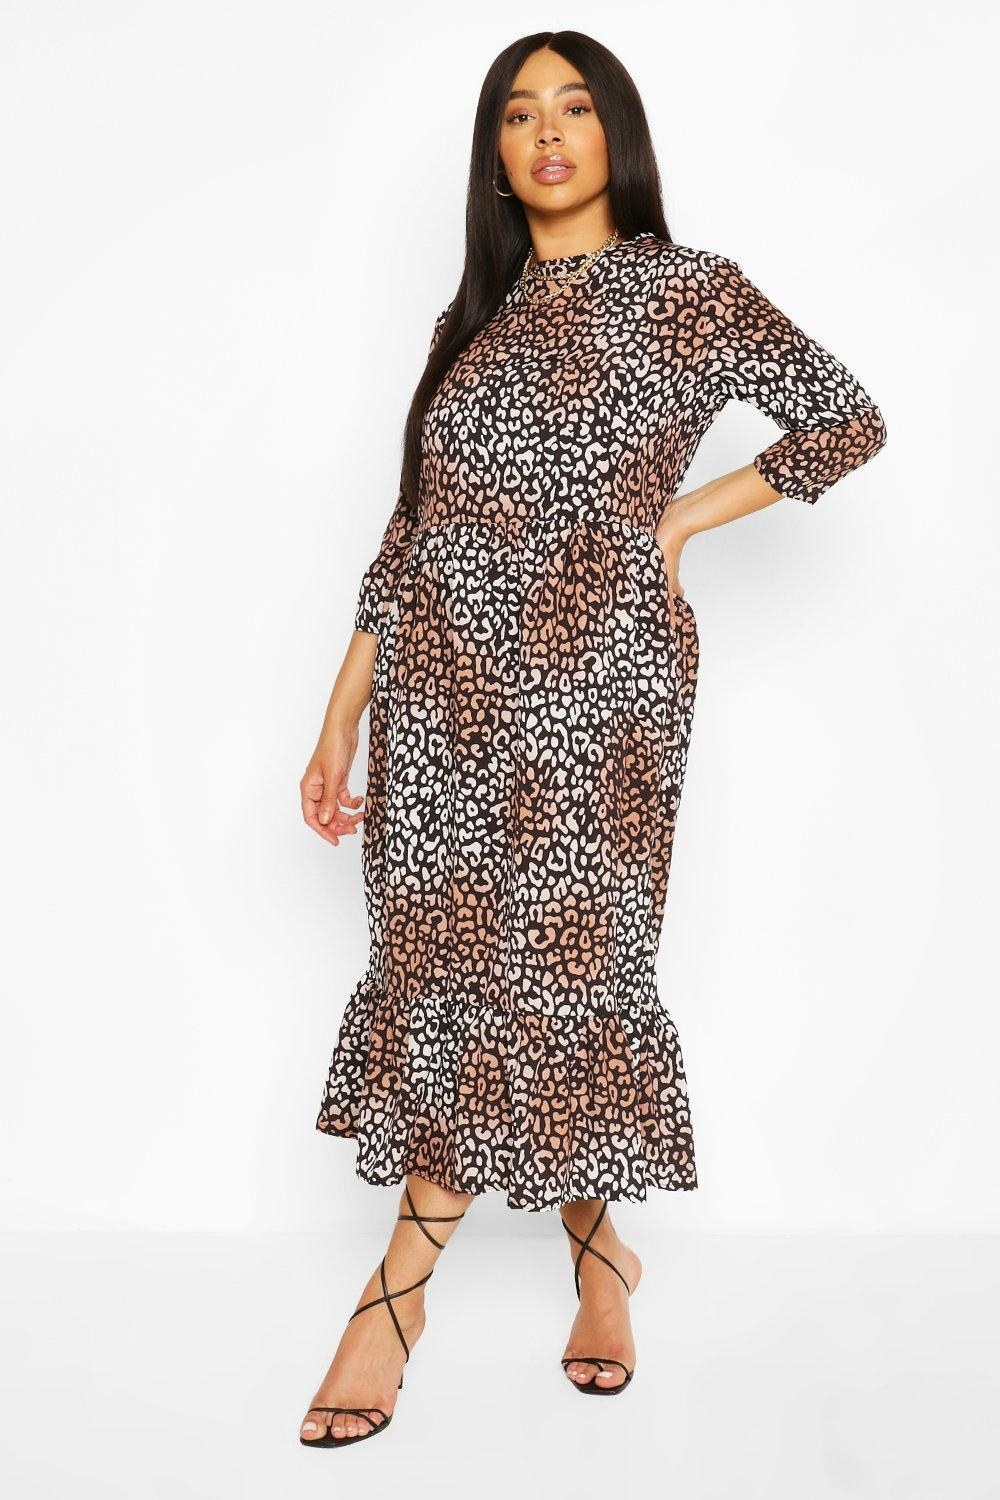 Model in the leopard-print dress with ruffle hem